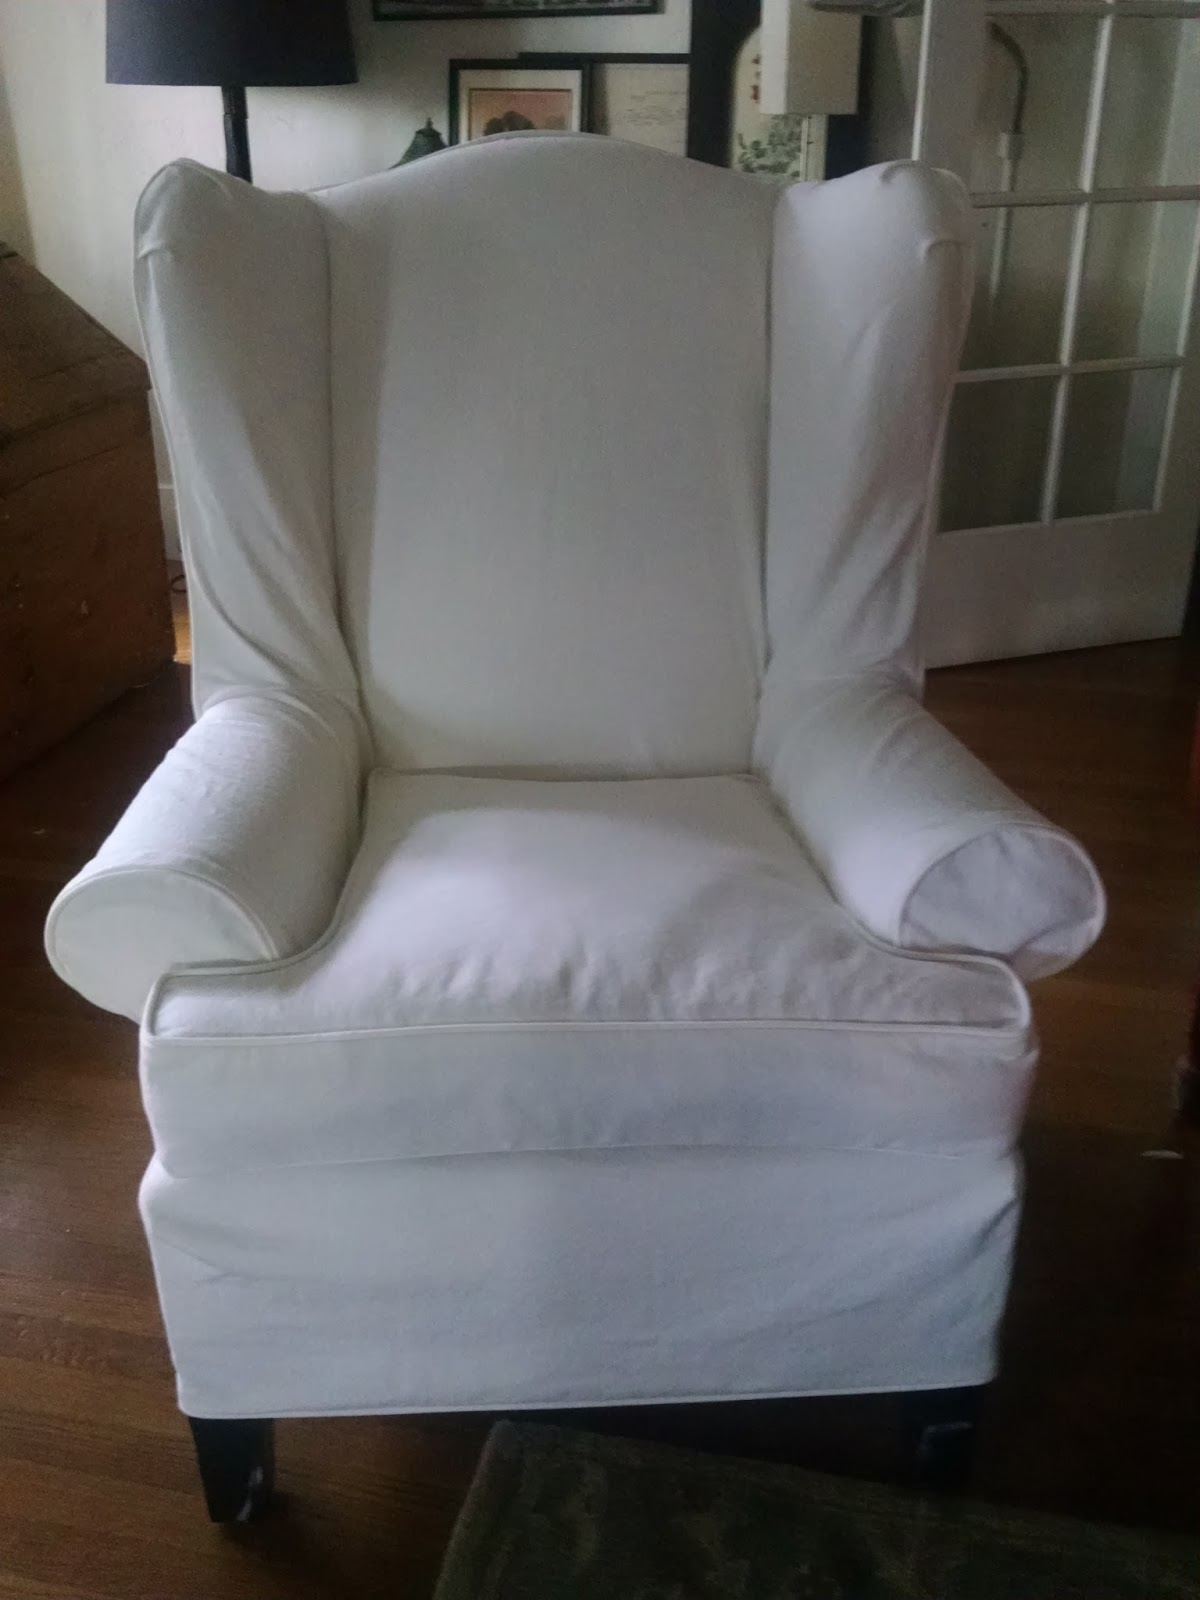 The Chair Has Been Transformed. The Fit Is Perfect!!! The Fabric A  Canvas/duct But Soft And Very Comfortable To Sit In. It Is Like Getting A  New Piece Of ...